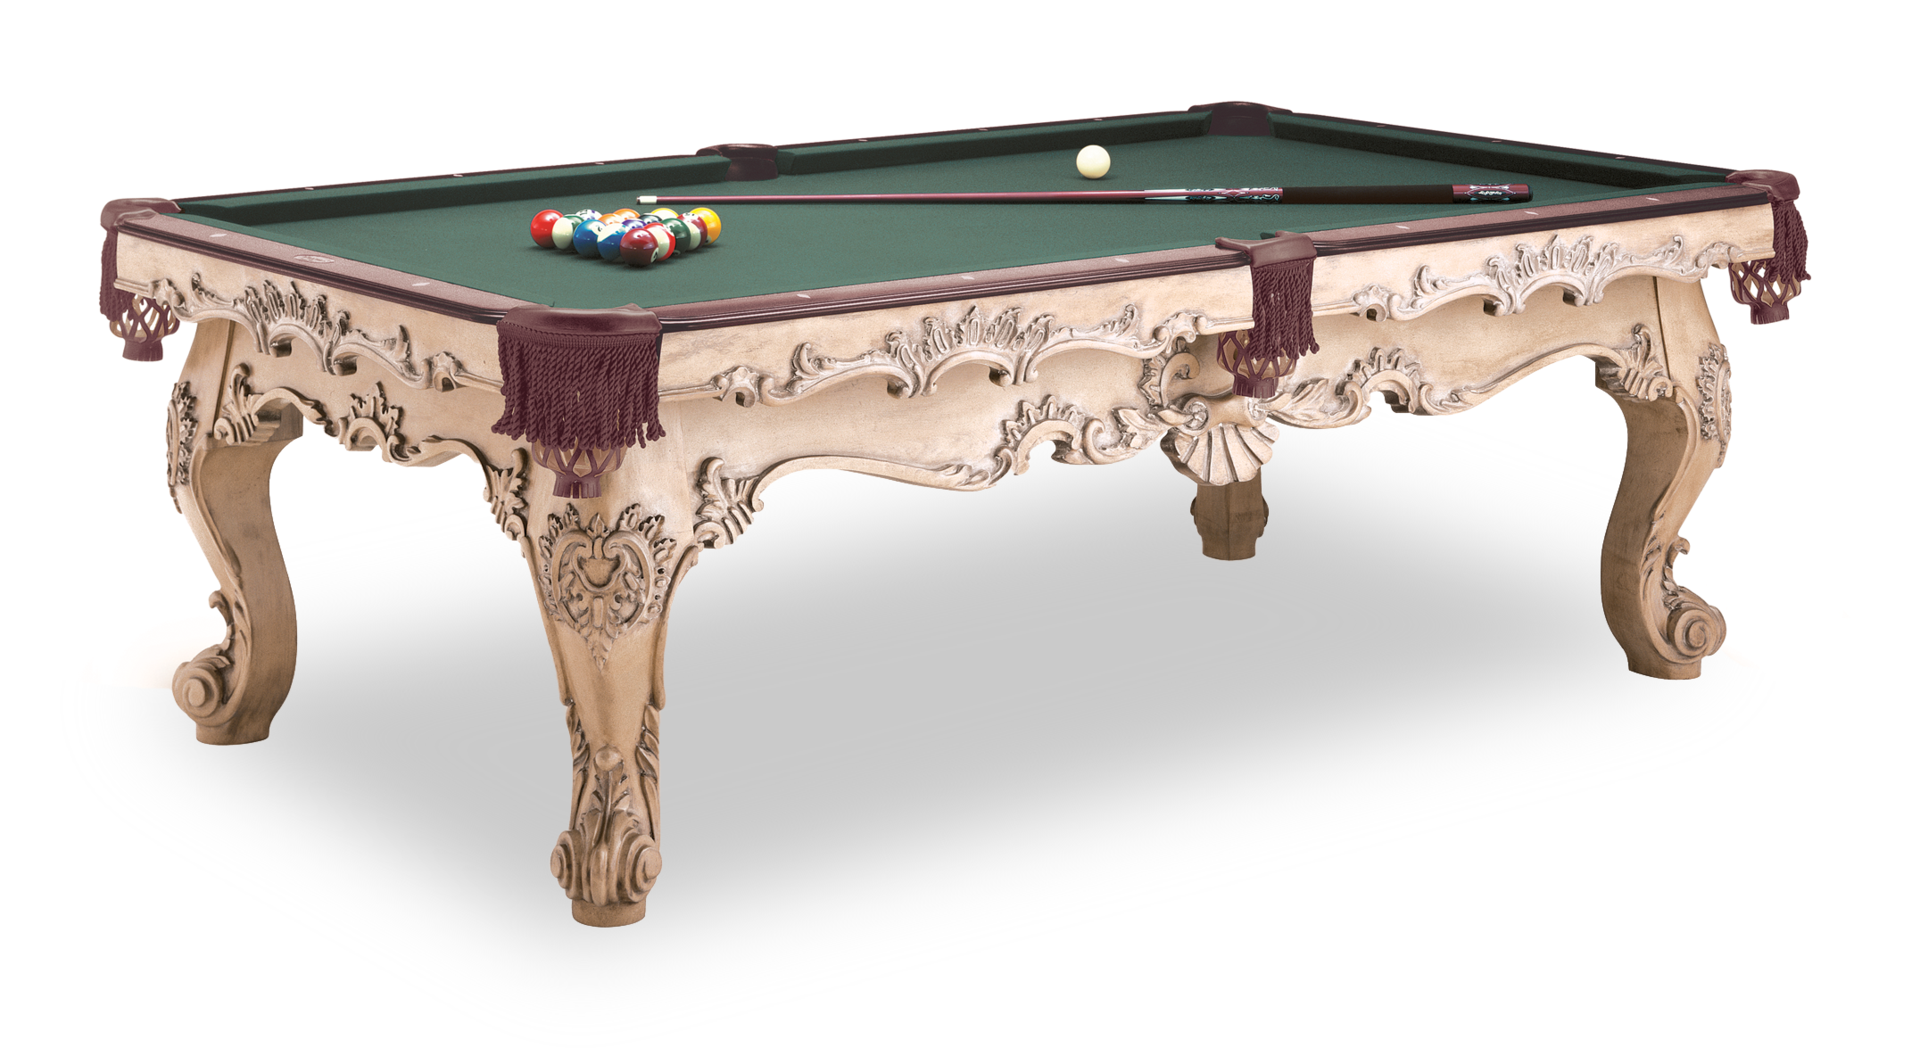 los angeles pool table orange tables olhausen used